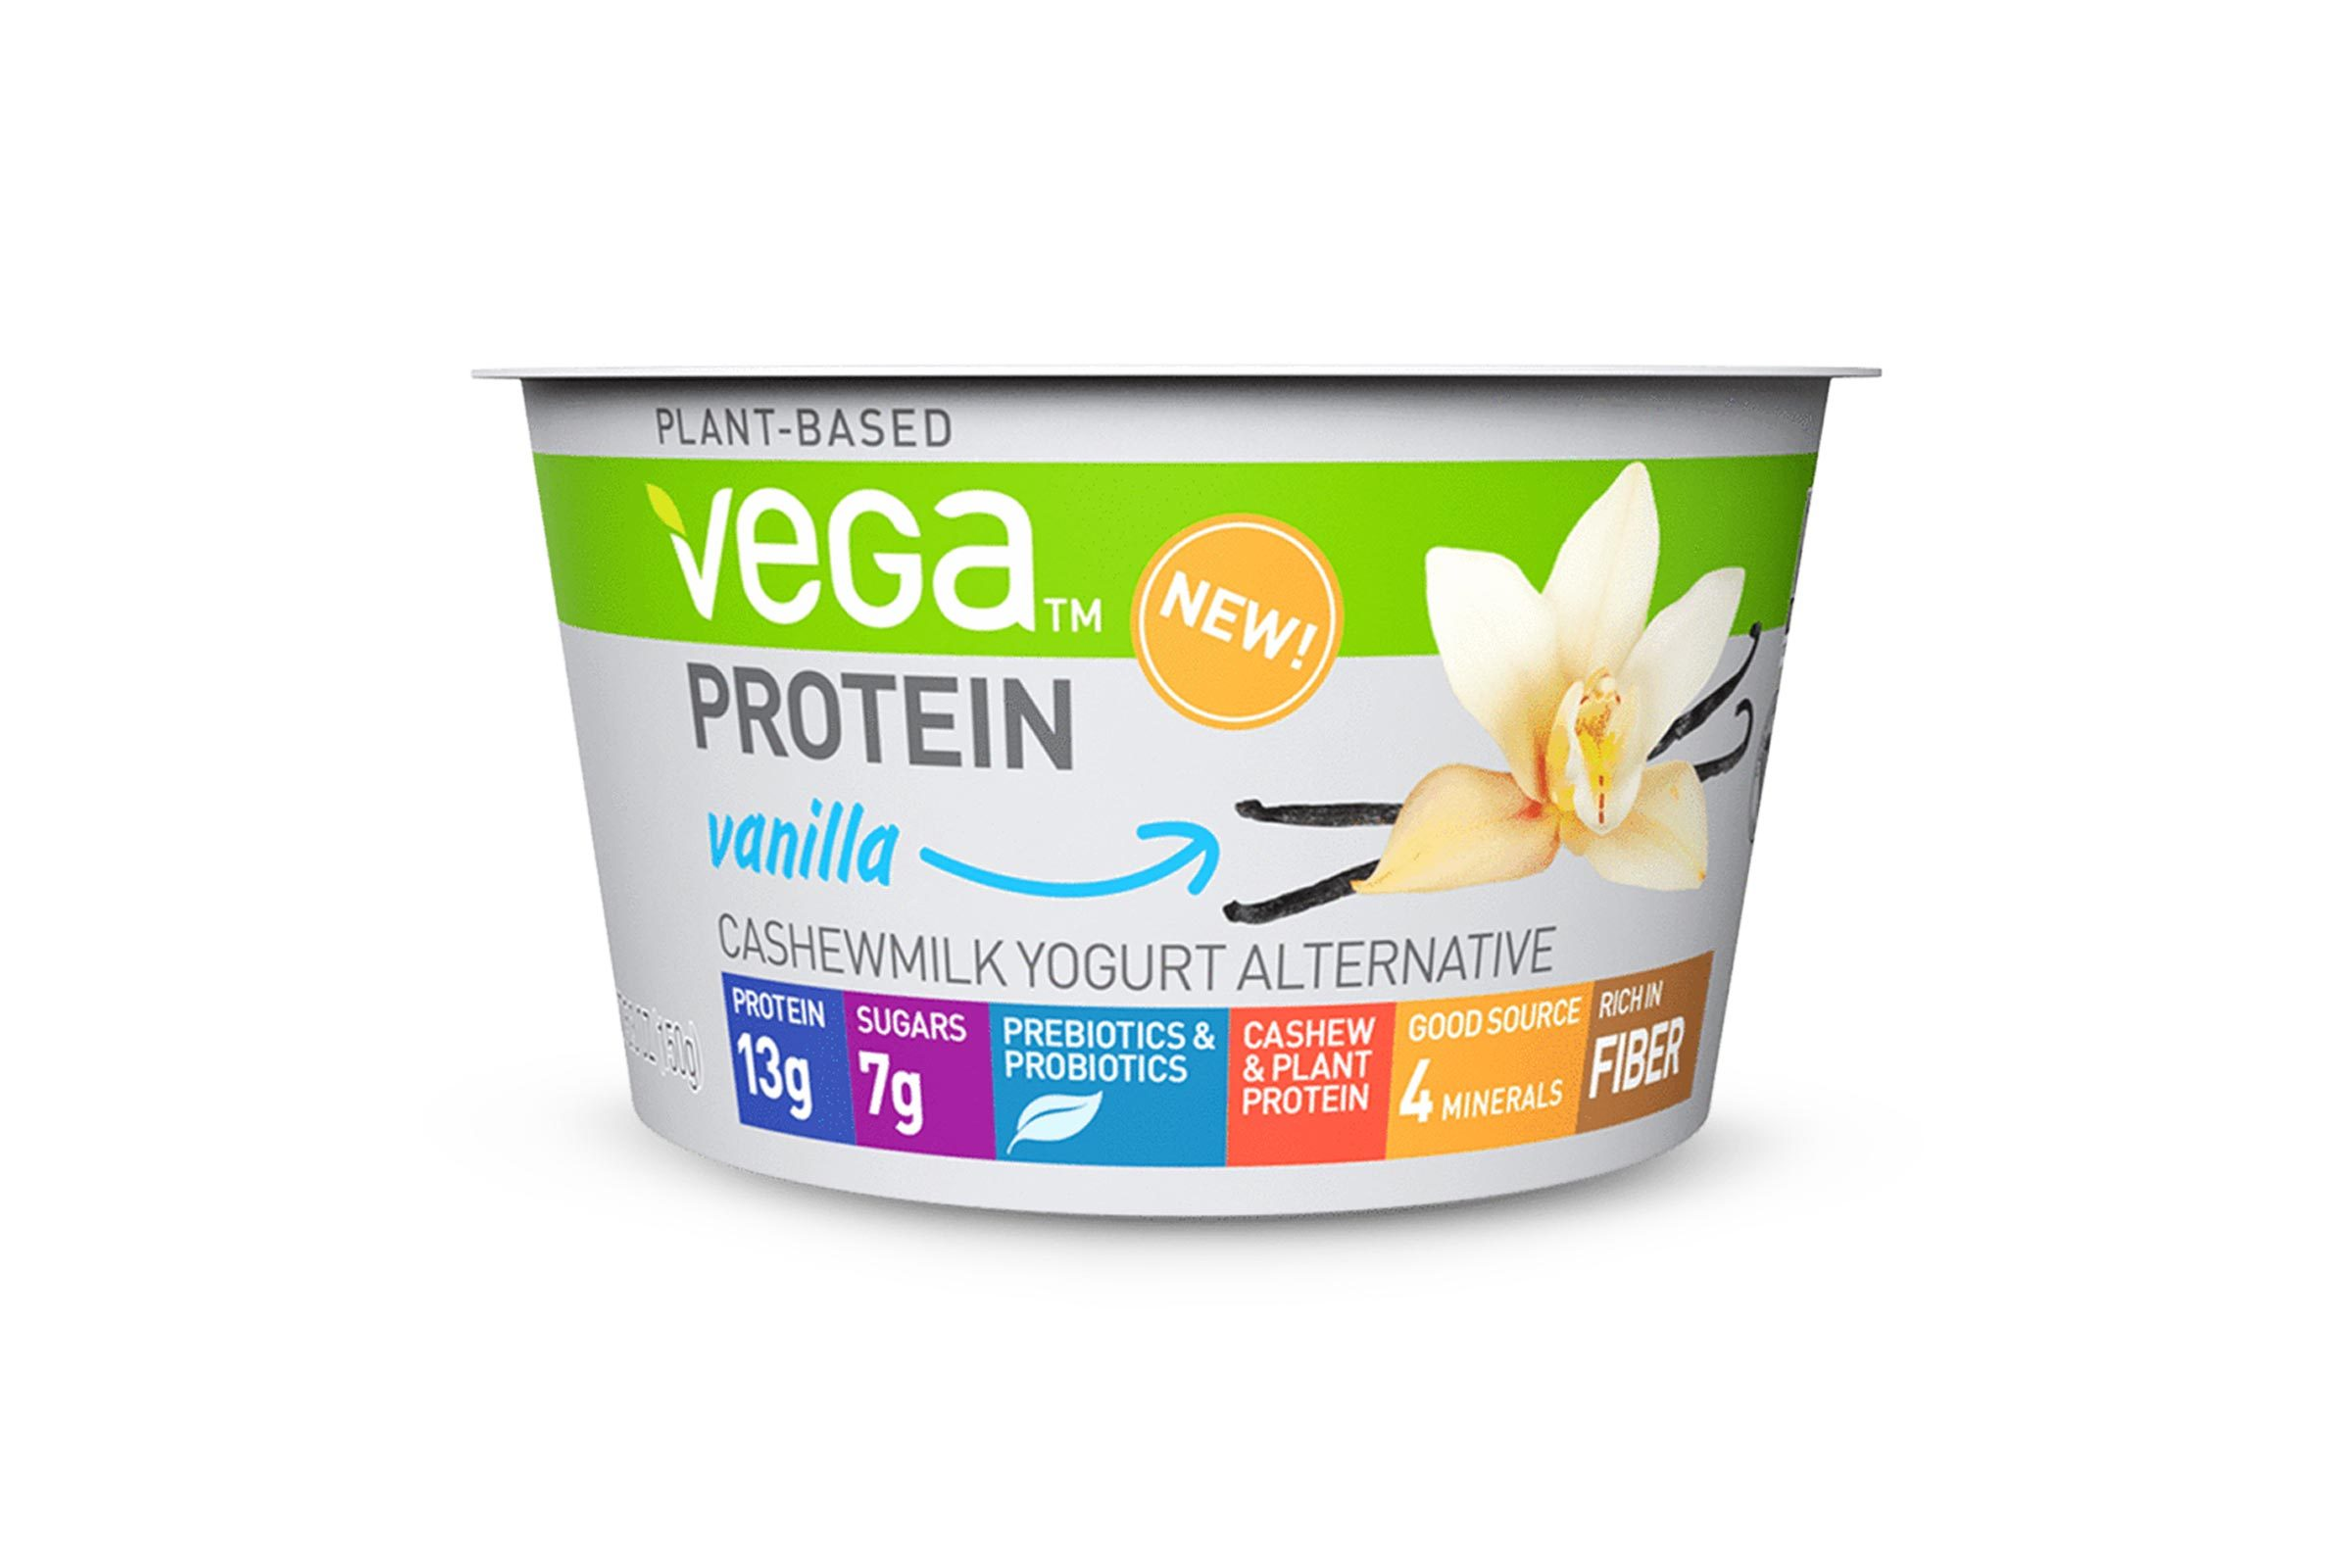 VEGA PROTEIN CASHEWMILK YOGURT ALTERNATIVE